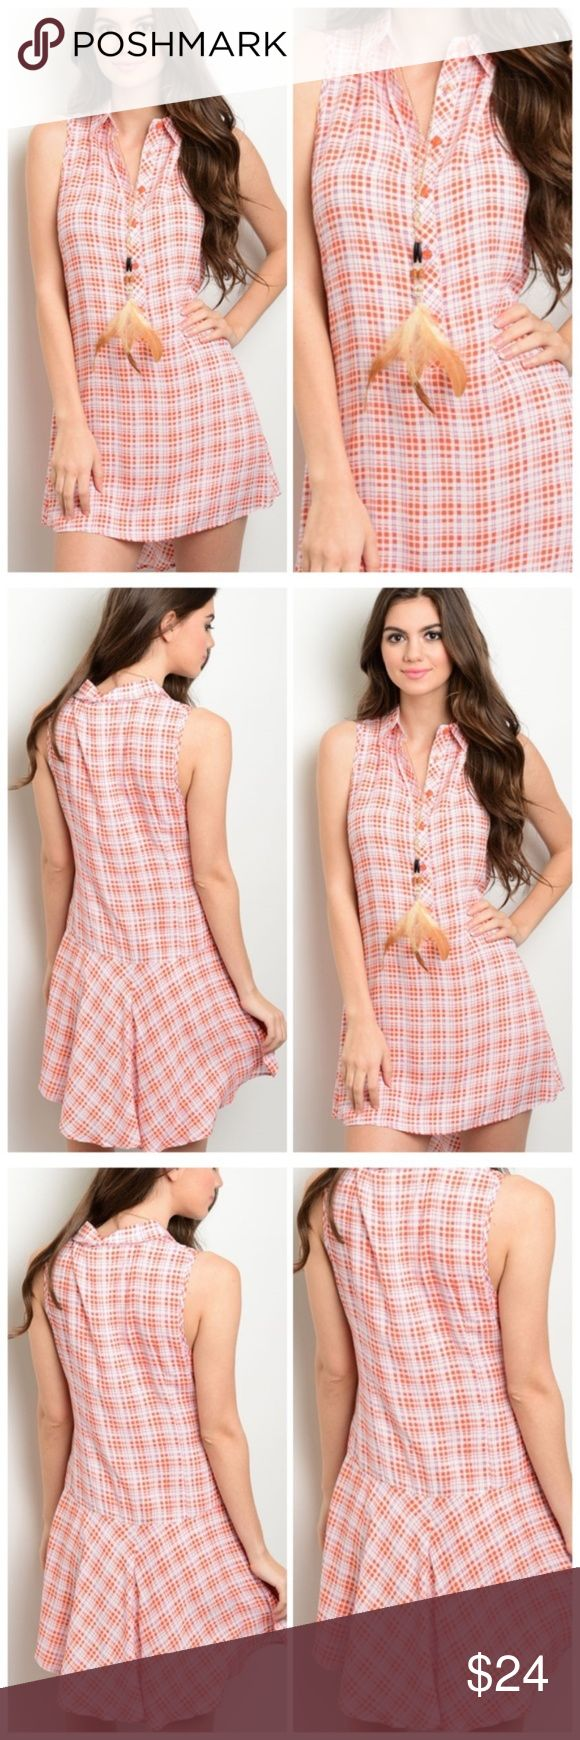 womens Button Up Sleeveless Plaid  Mini Dress New This sleeveless minidress features a button up bodice, a flared skirt hem and a pointed collar. This dress is bright and sunny with its orange and ivory mini plaid pattern and a real must have this spring and summer. The fabric is made of a sleek soft fabric that is 100%rayon and fits true to size with minimal stretch. Wear this with sandals to you favorite festival or a pair of slip ons for a picnic in the park! Satisfaction guaranteed…